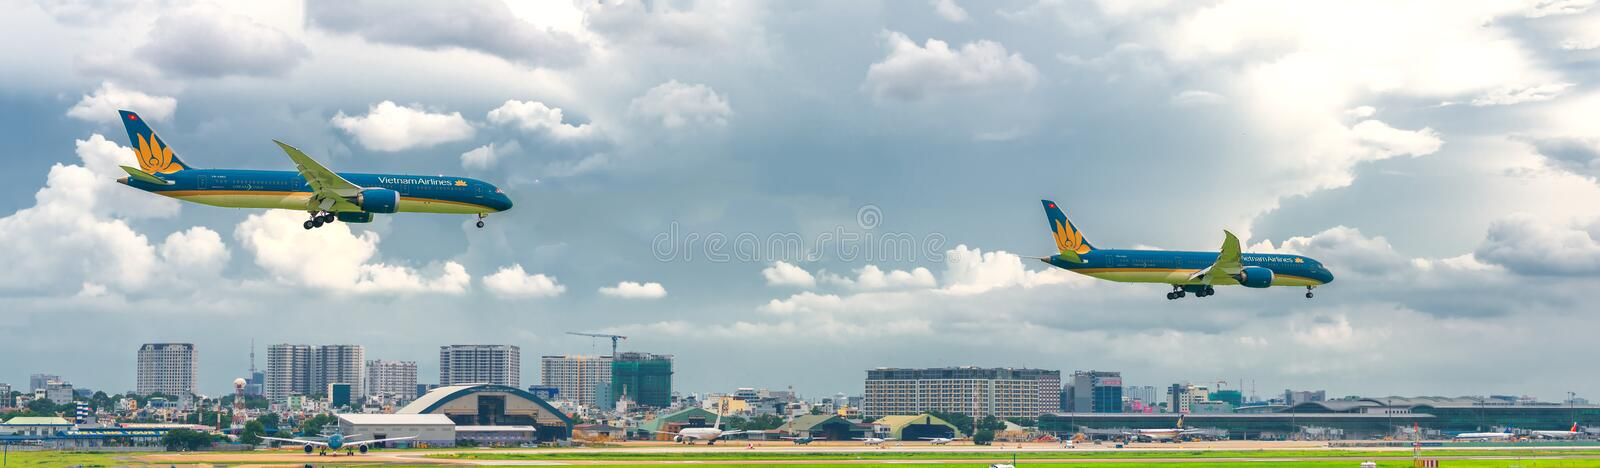 Ietnam airline boeing 787 landing at Tan Son Nhat International Airport. Ho Chi Minh City, Vietnam - July 29th, 2018: Vietnam airline boeing 787 landing at Tan stock photography